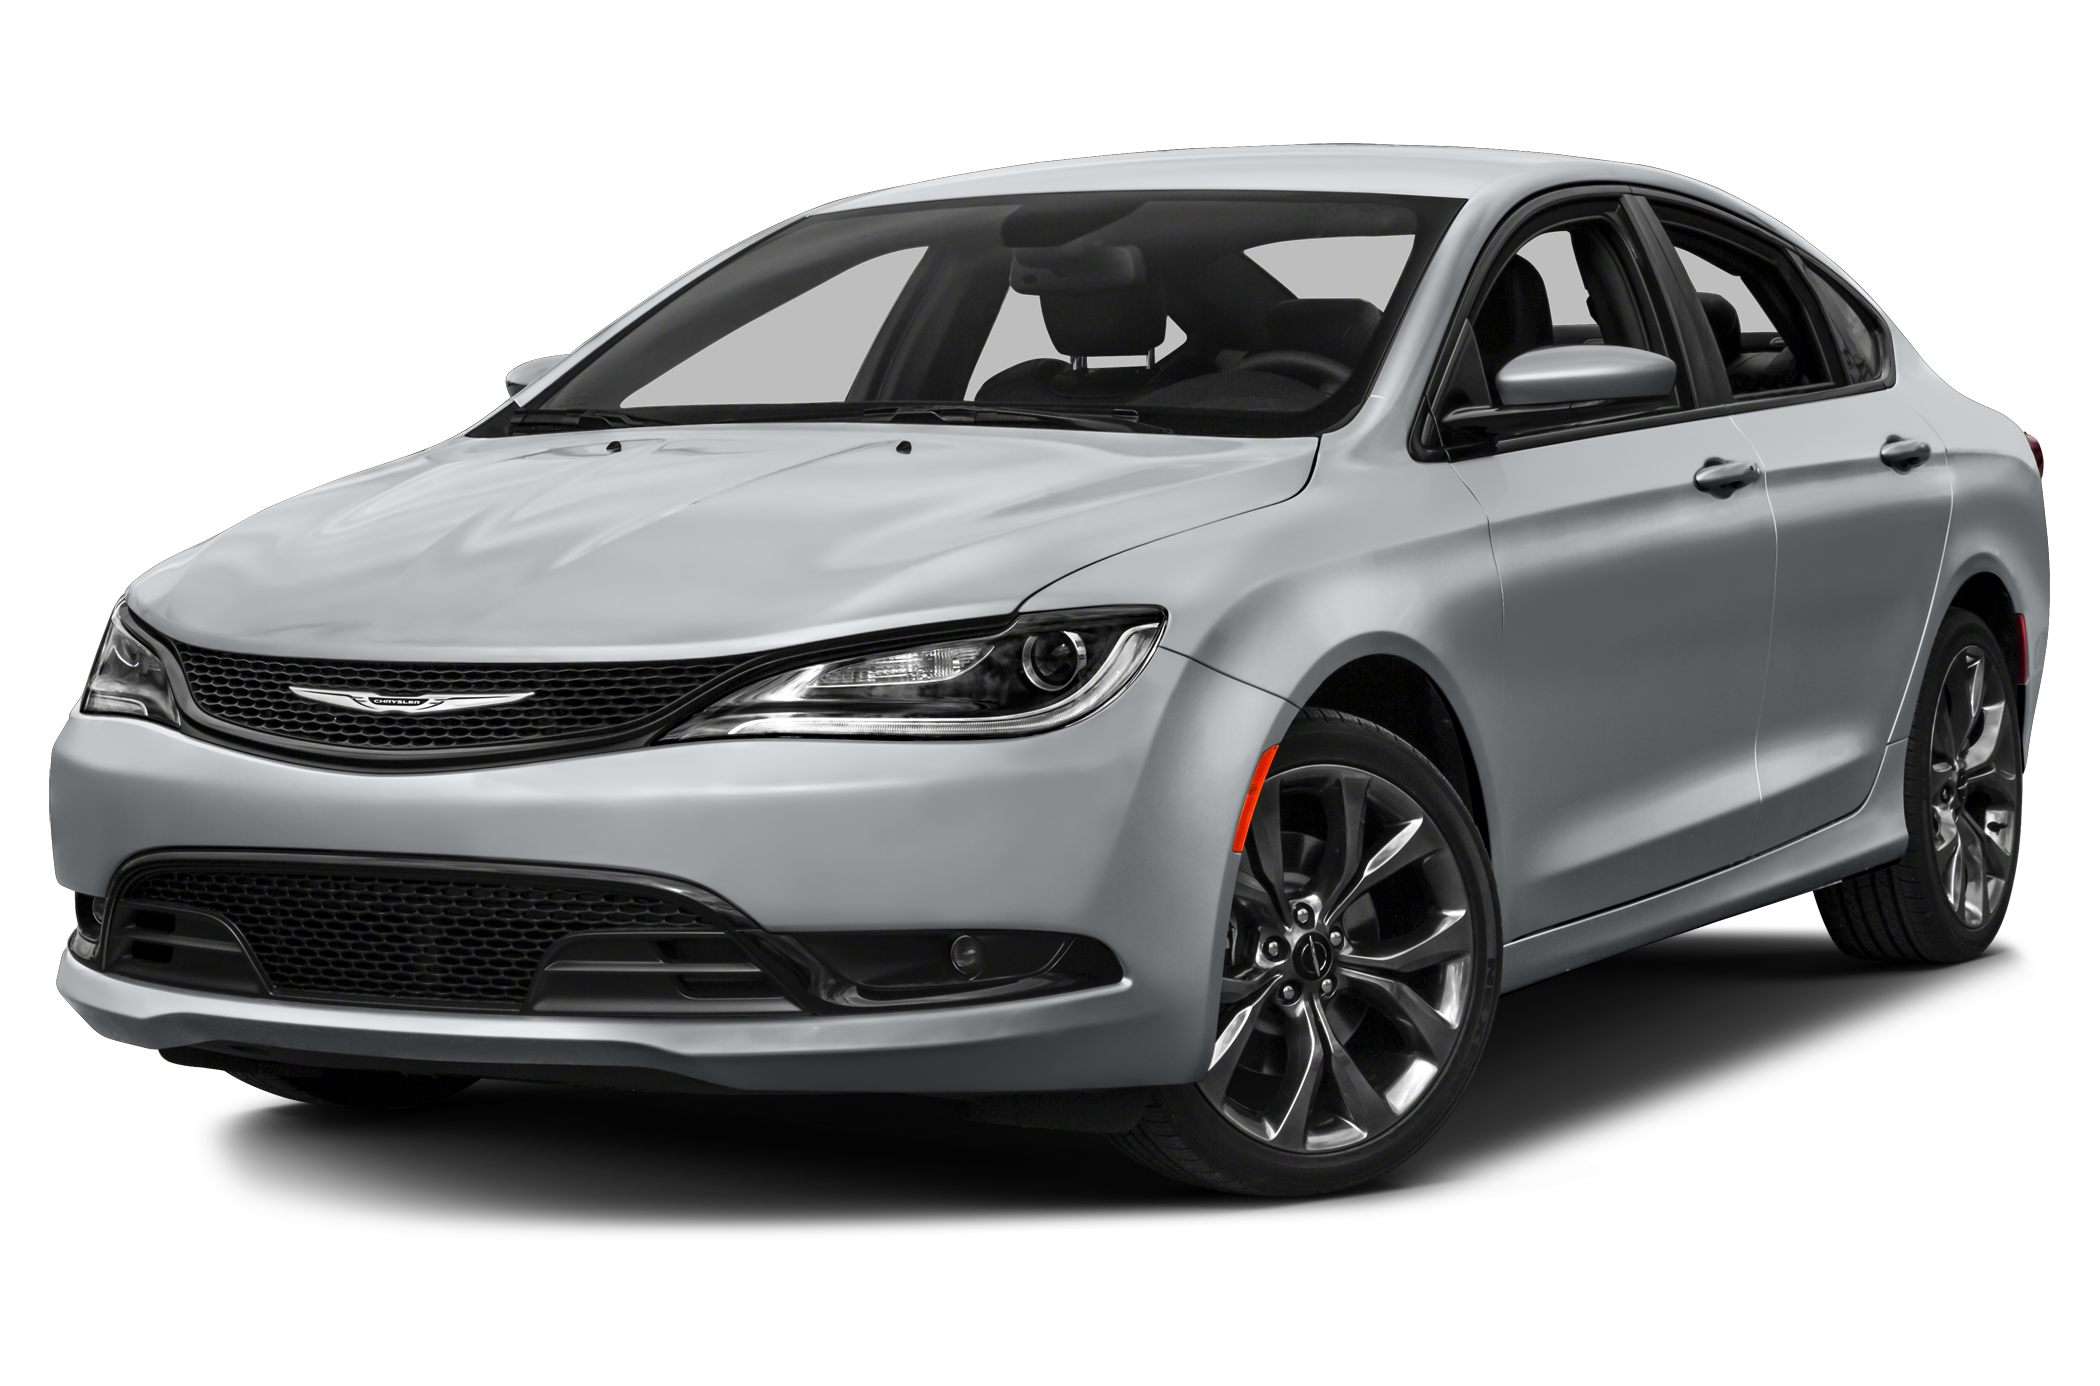 2015 Chrysler 200 S Sedan for sale in Springfield for $29,730 with 10 miles